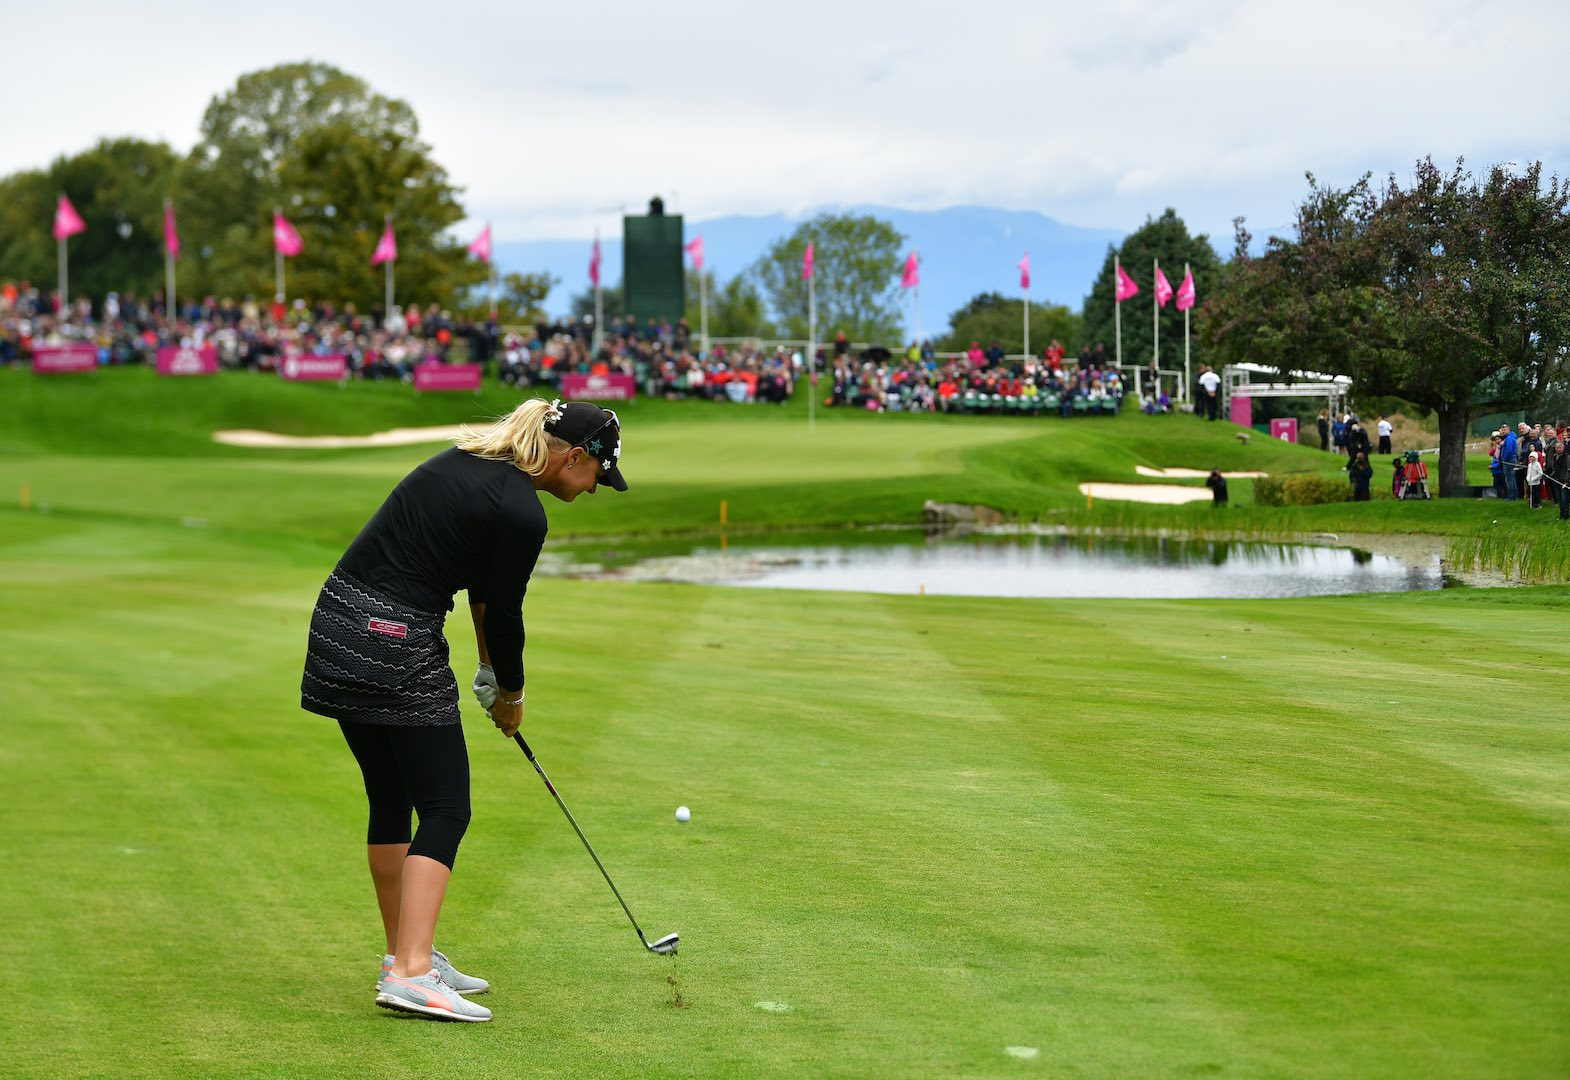 Anna Nordqvist claims major glory after Evian Championship play-off